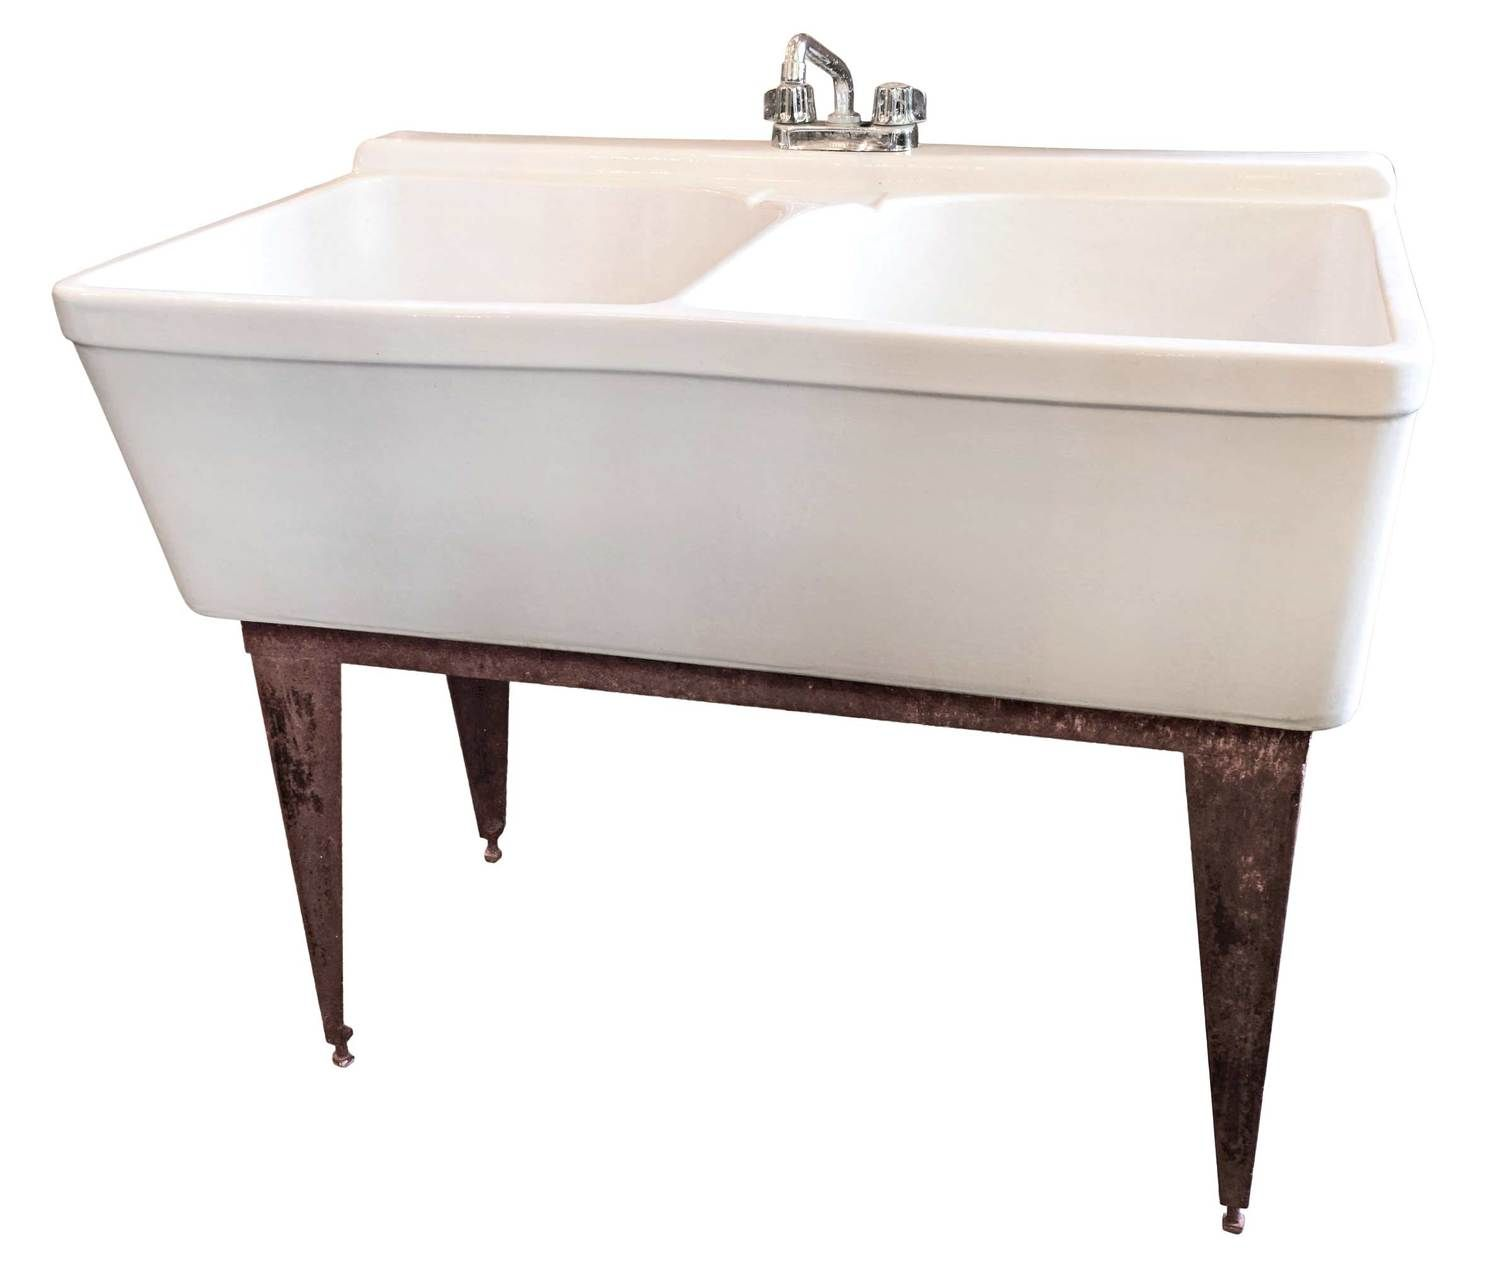 AA# 46407 Porcelain Laundry Sink By Crane With Two Deep Basins, Center Soap  Holder, Cast Iron Base, And Chrome Gerber Faucet.